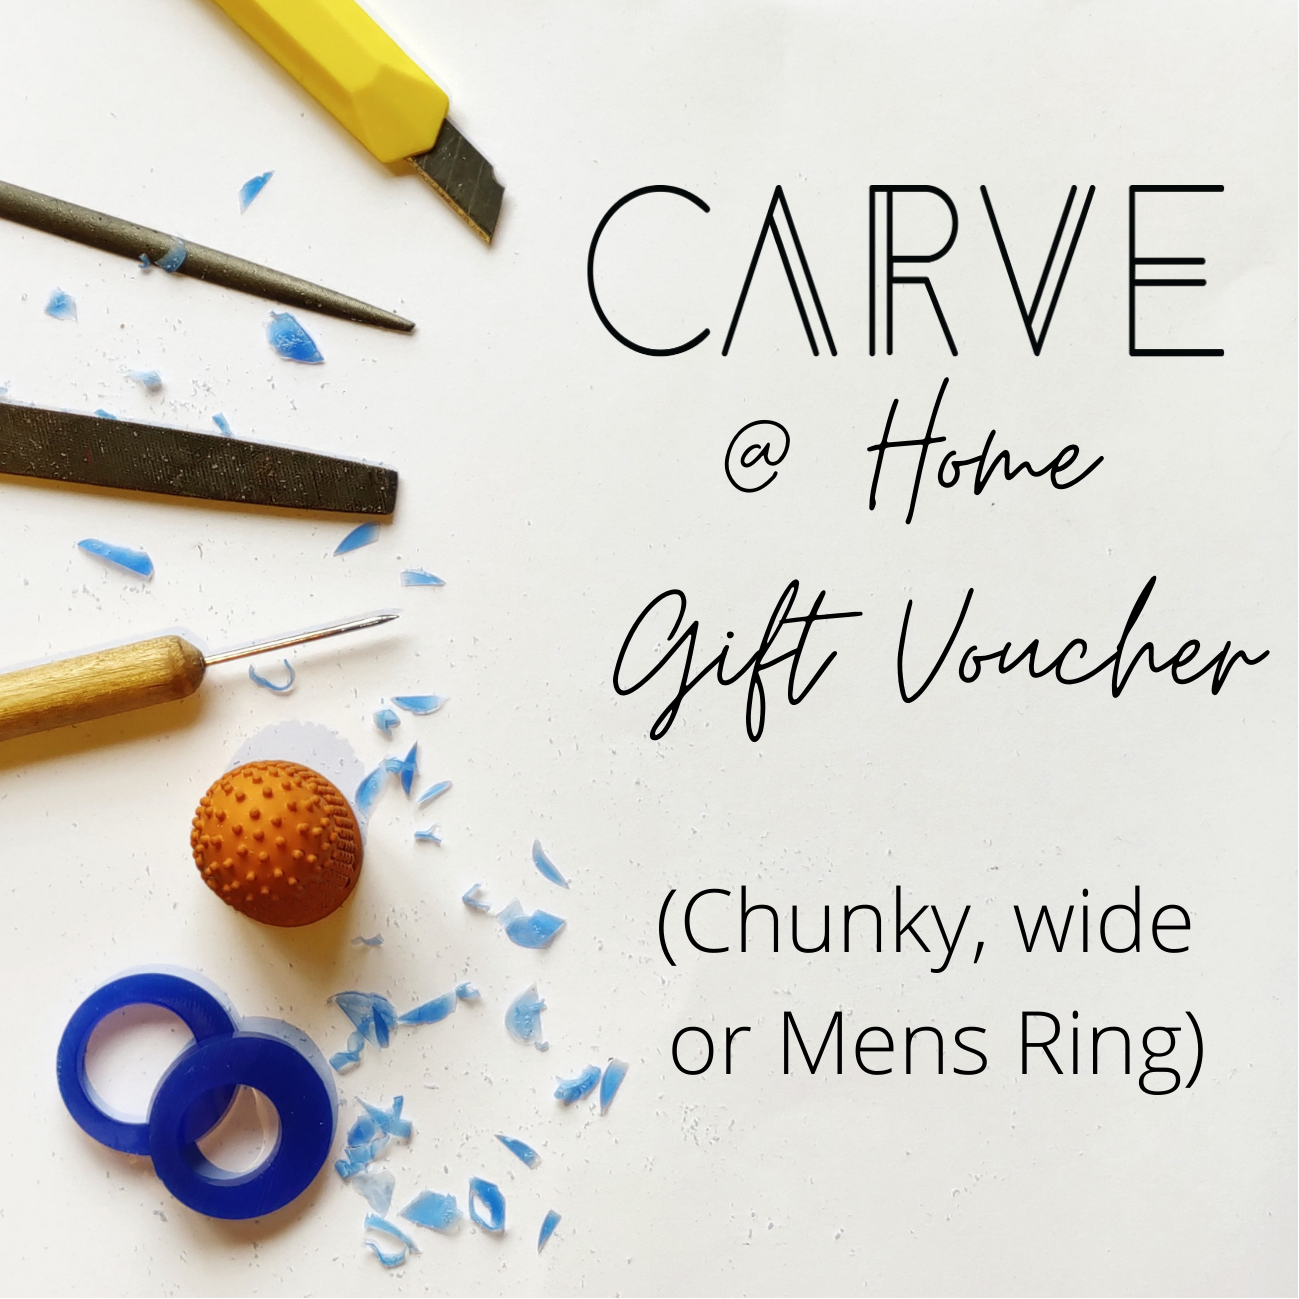 Carve @ Home Gift Voucher for Chunky or Mens ring (wide wax)